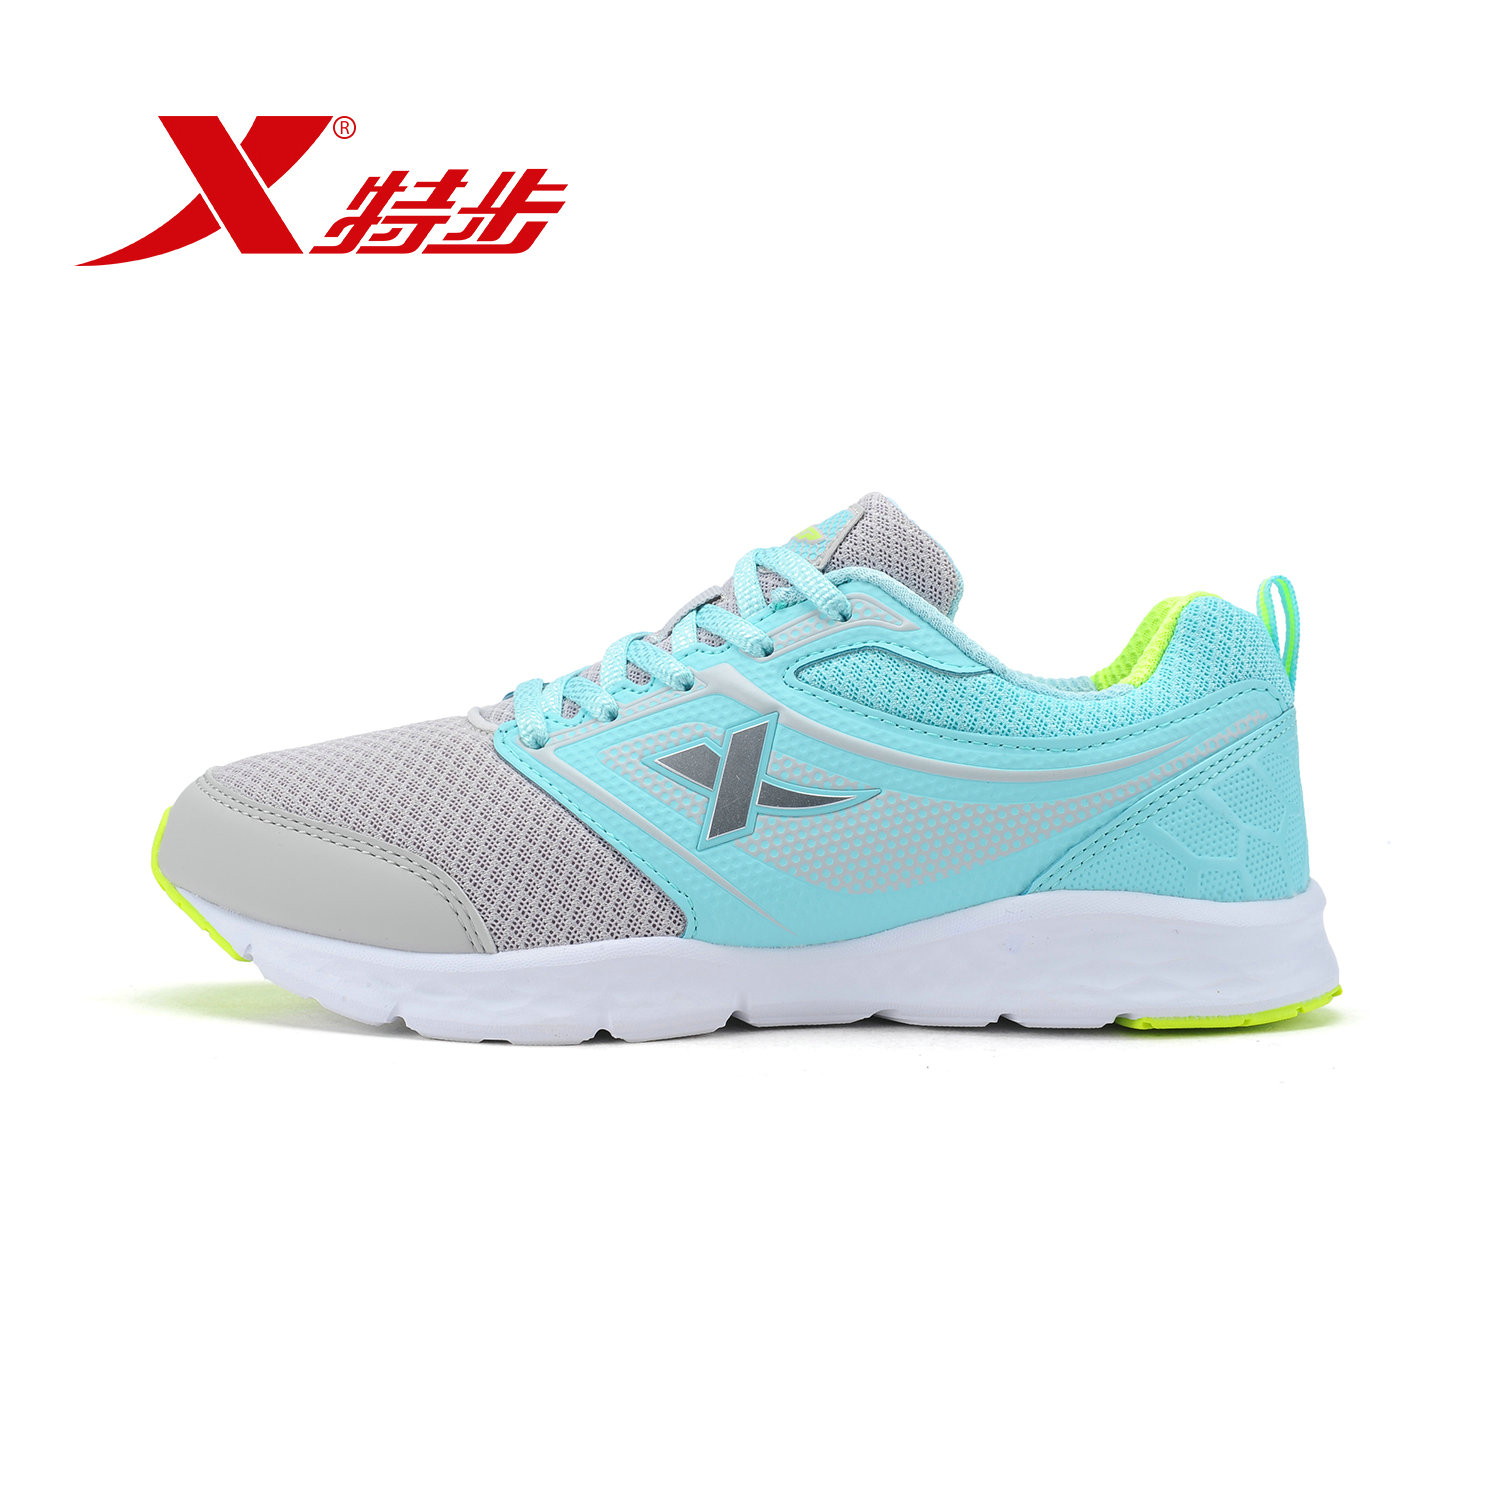 Xtep official authentic shoes breathable lightweight models fall fashion trend wild breathable running shoes women's sports tourism